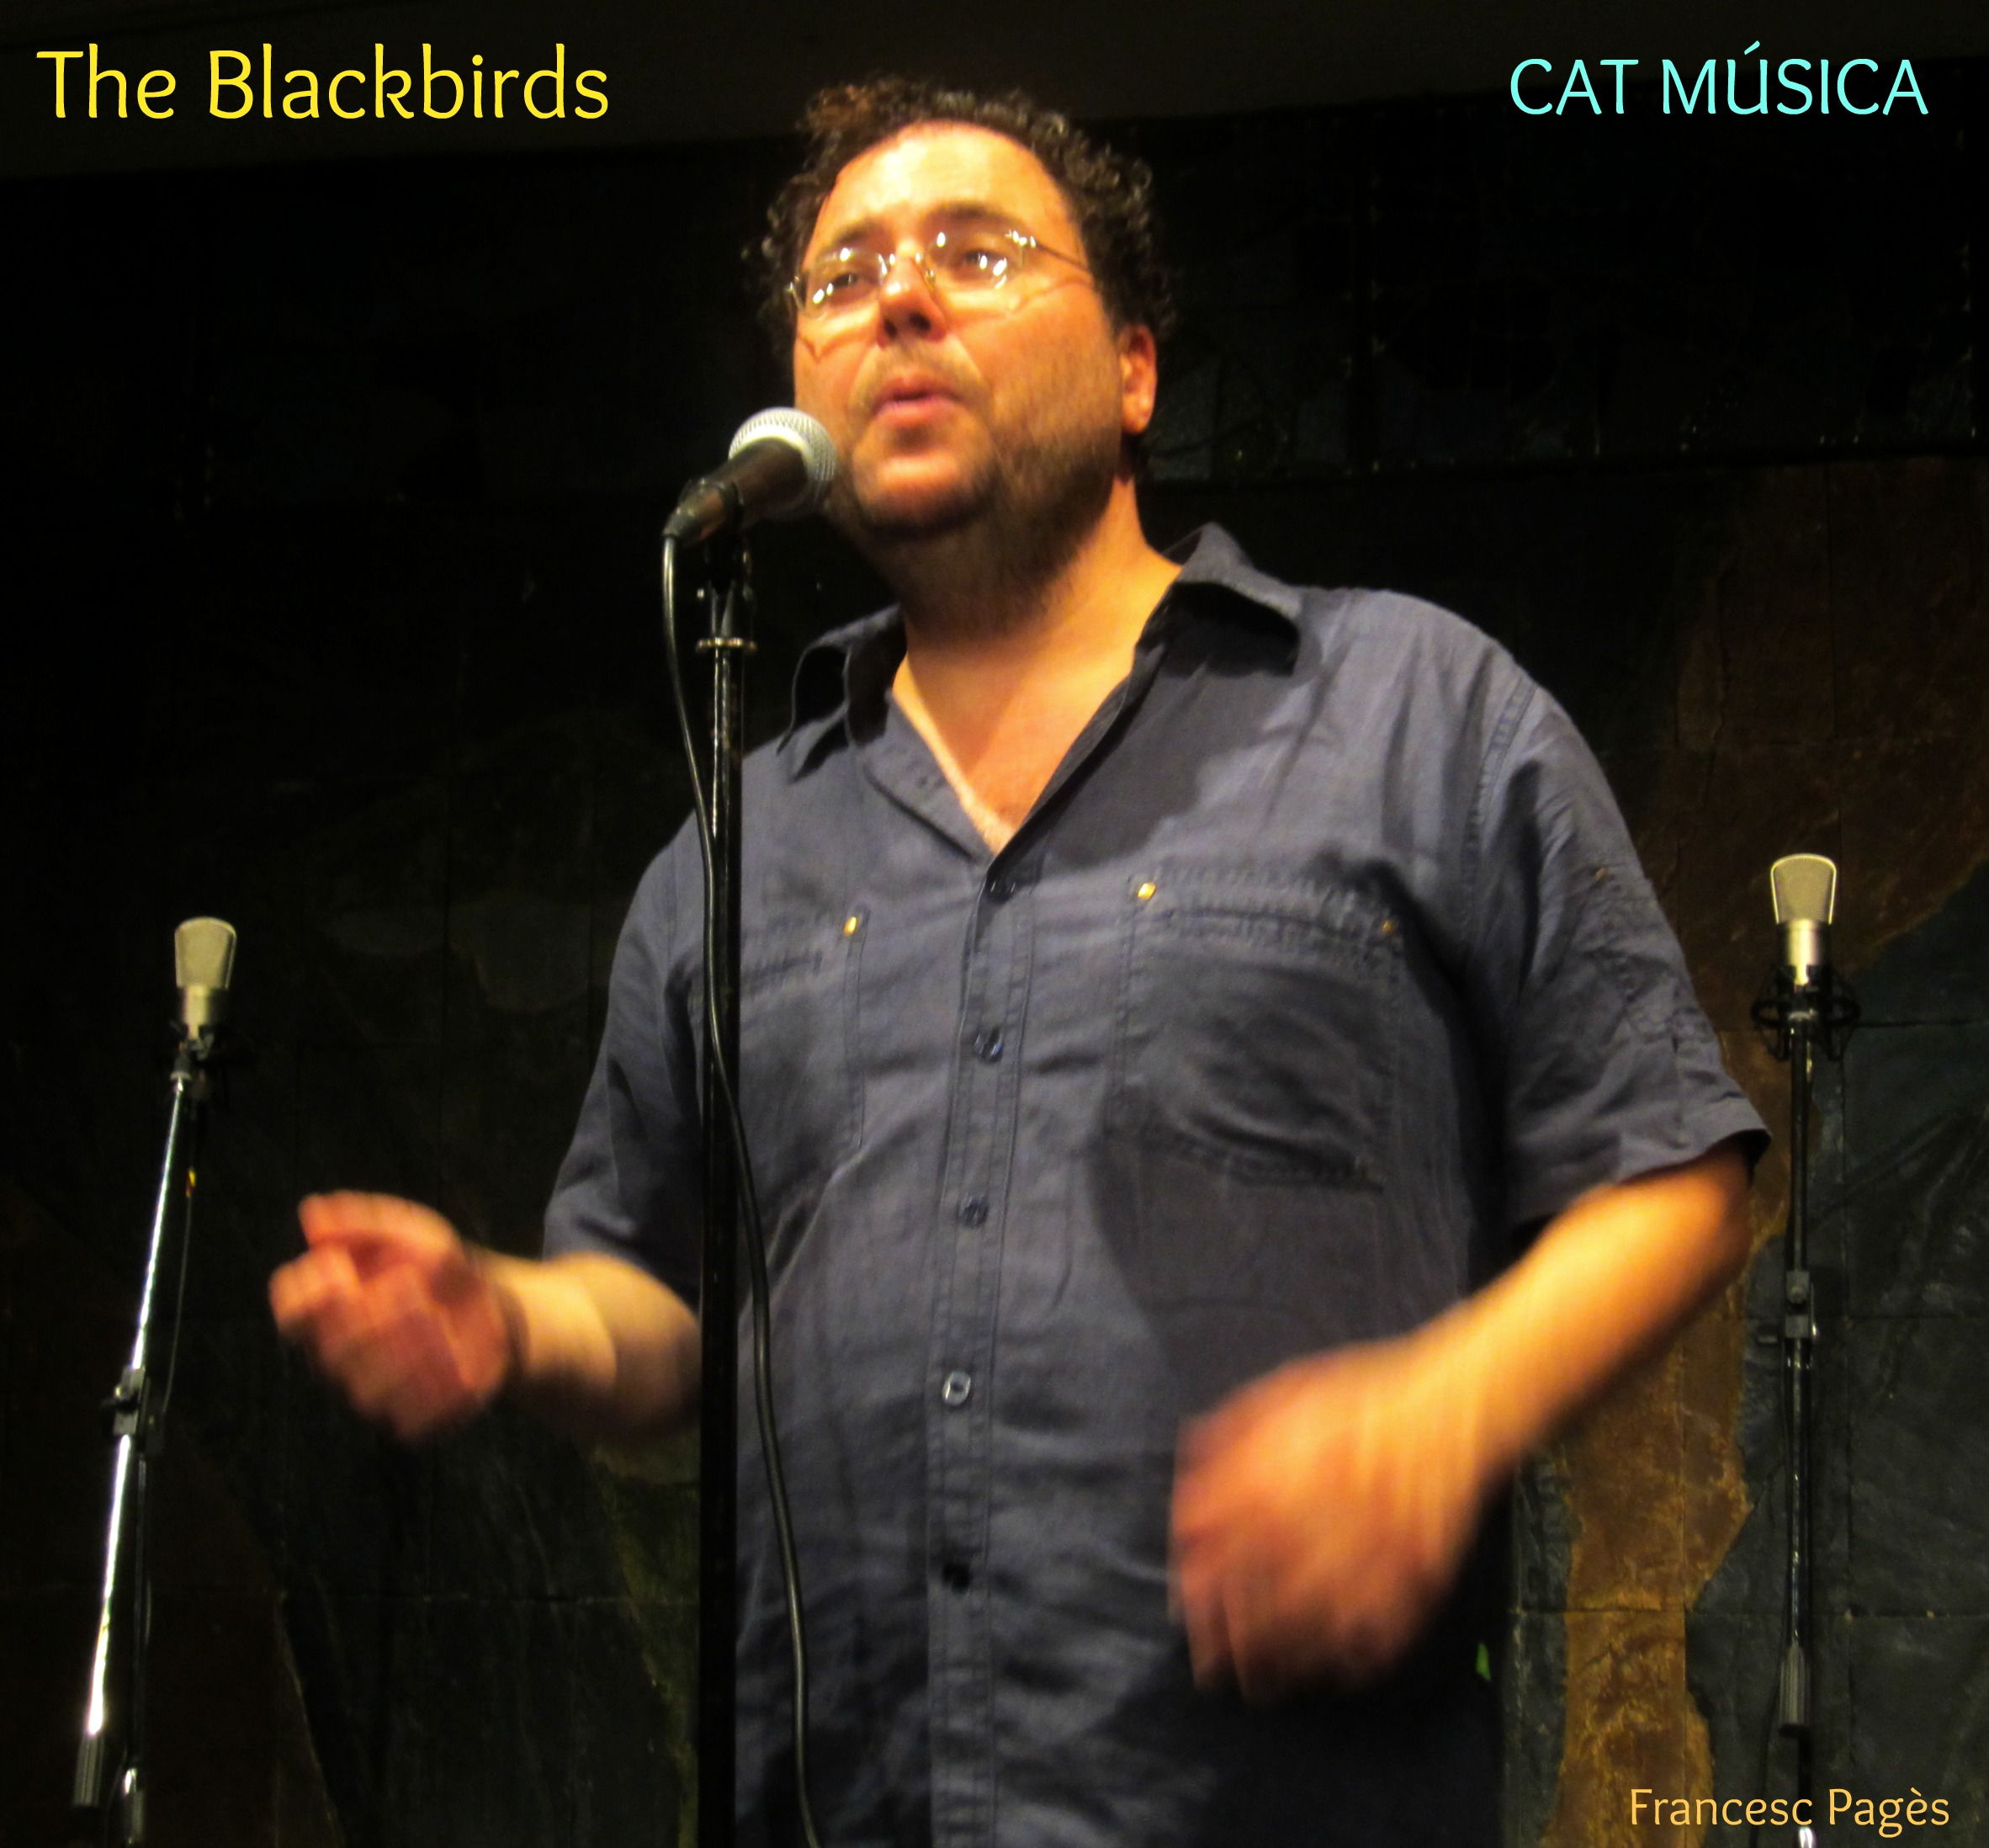 THE BLACKBIRDS - CAT MUSICAT